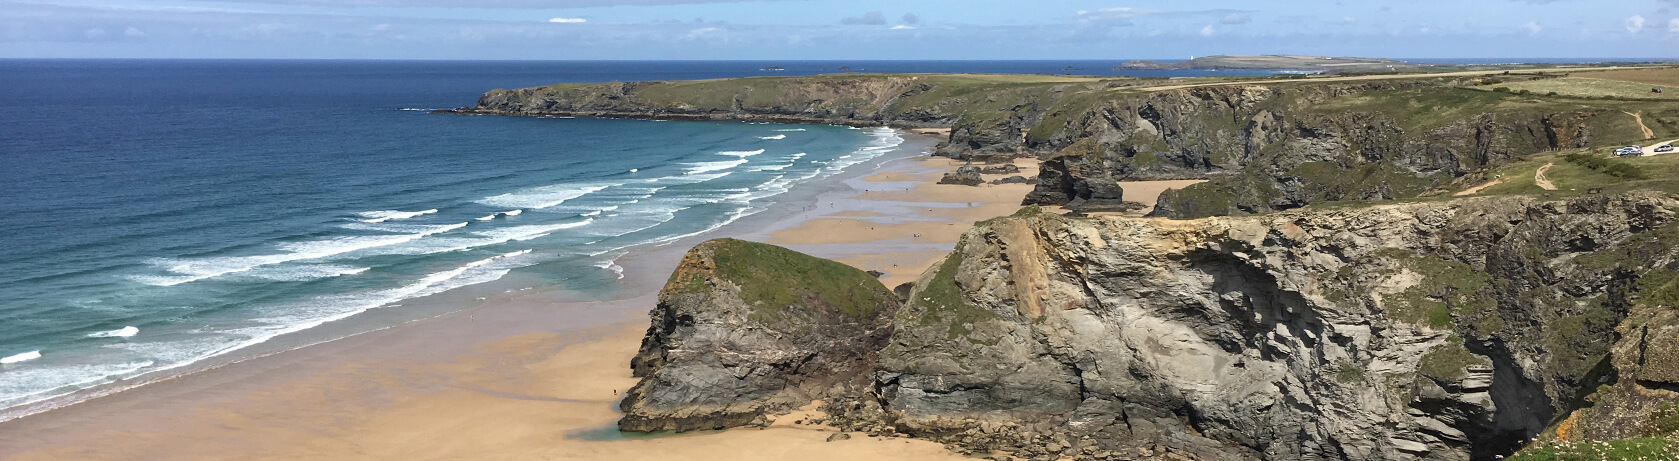 Things to do in Mawgan Porth